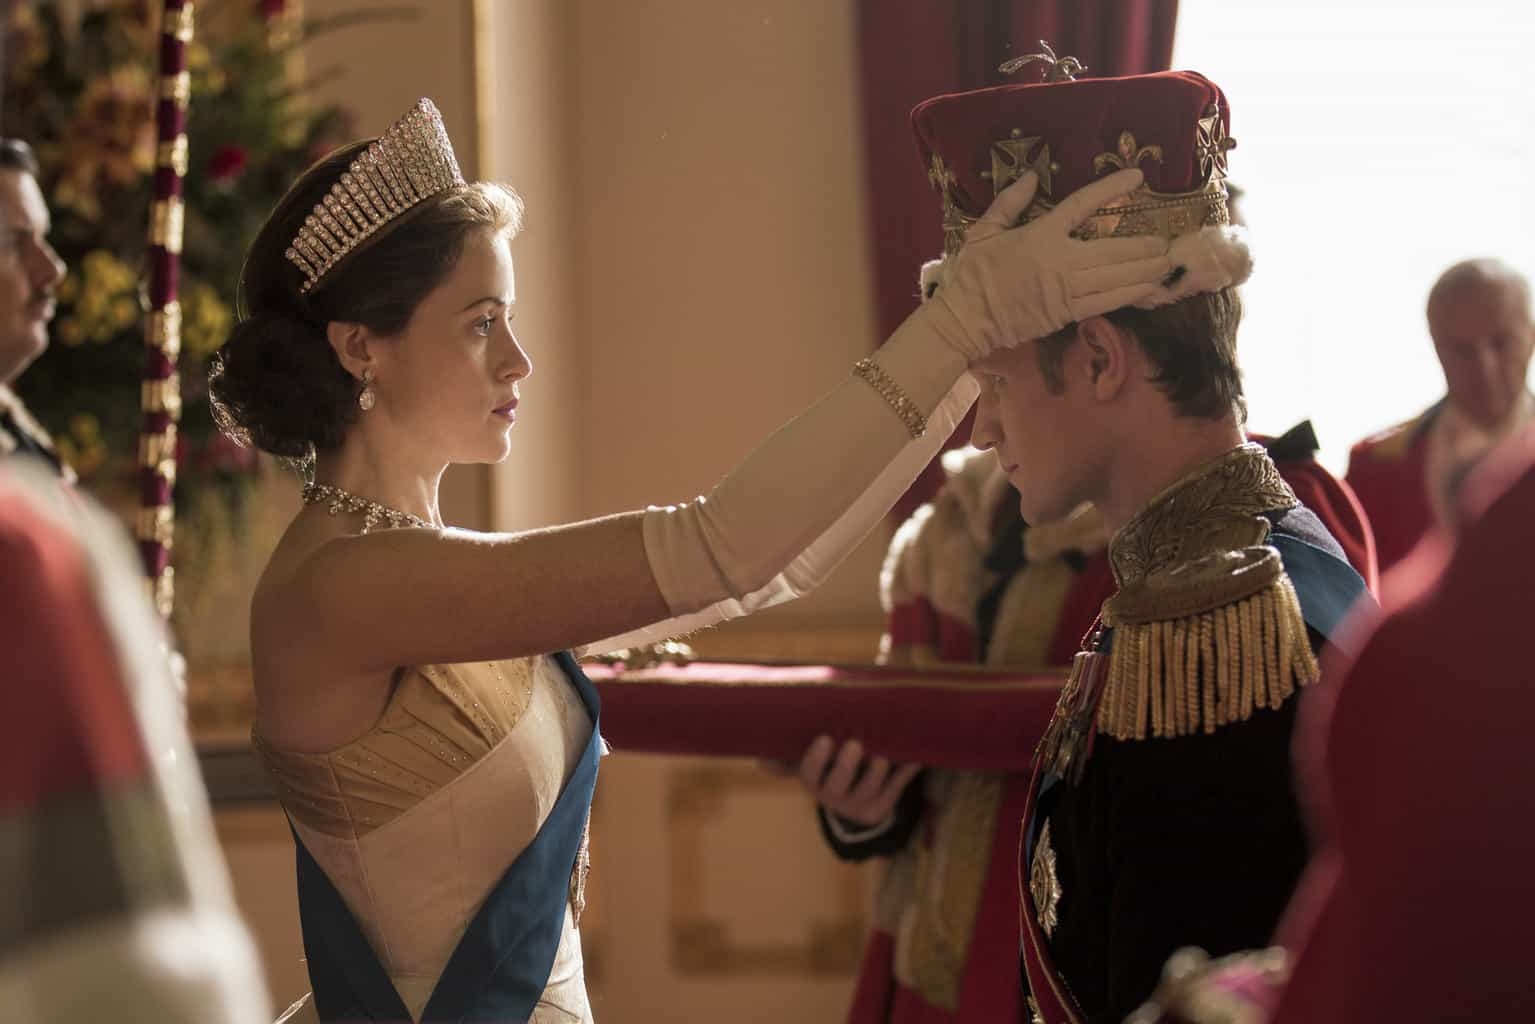 Season 2 of The Crown